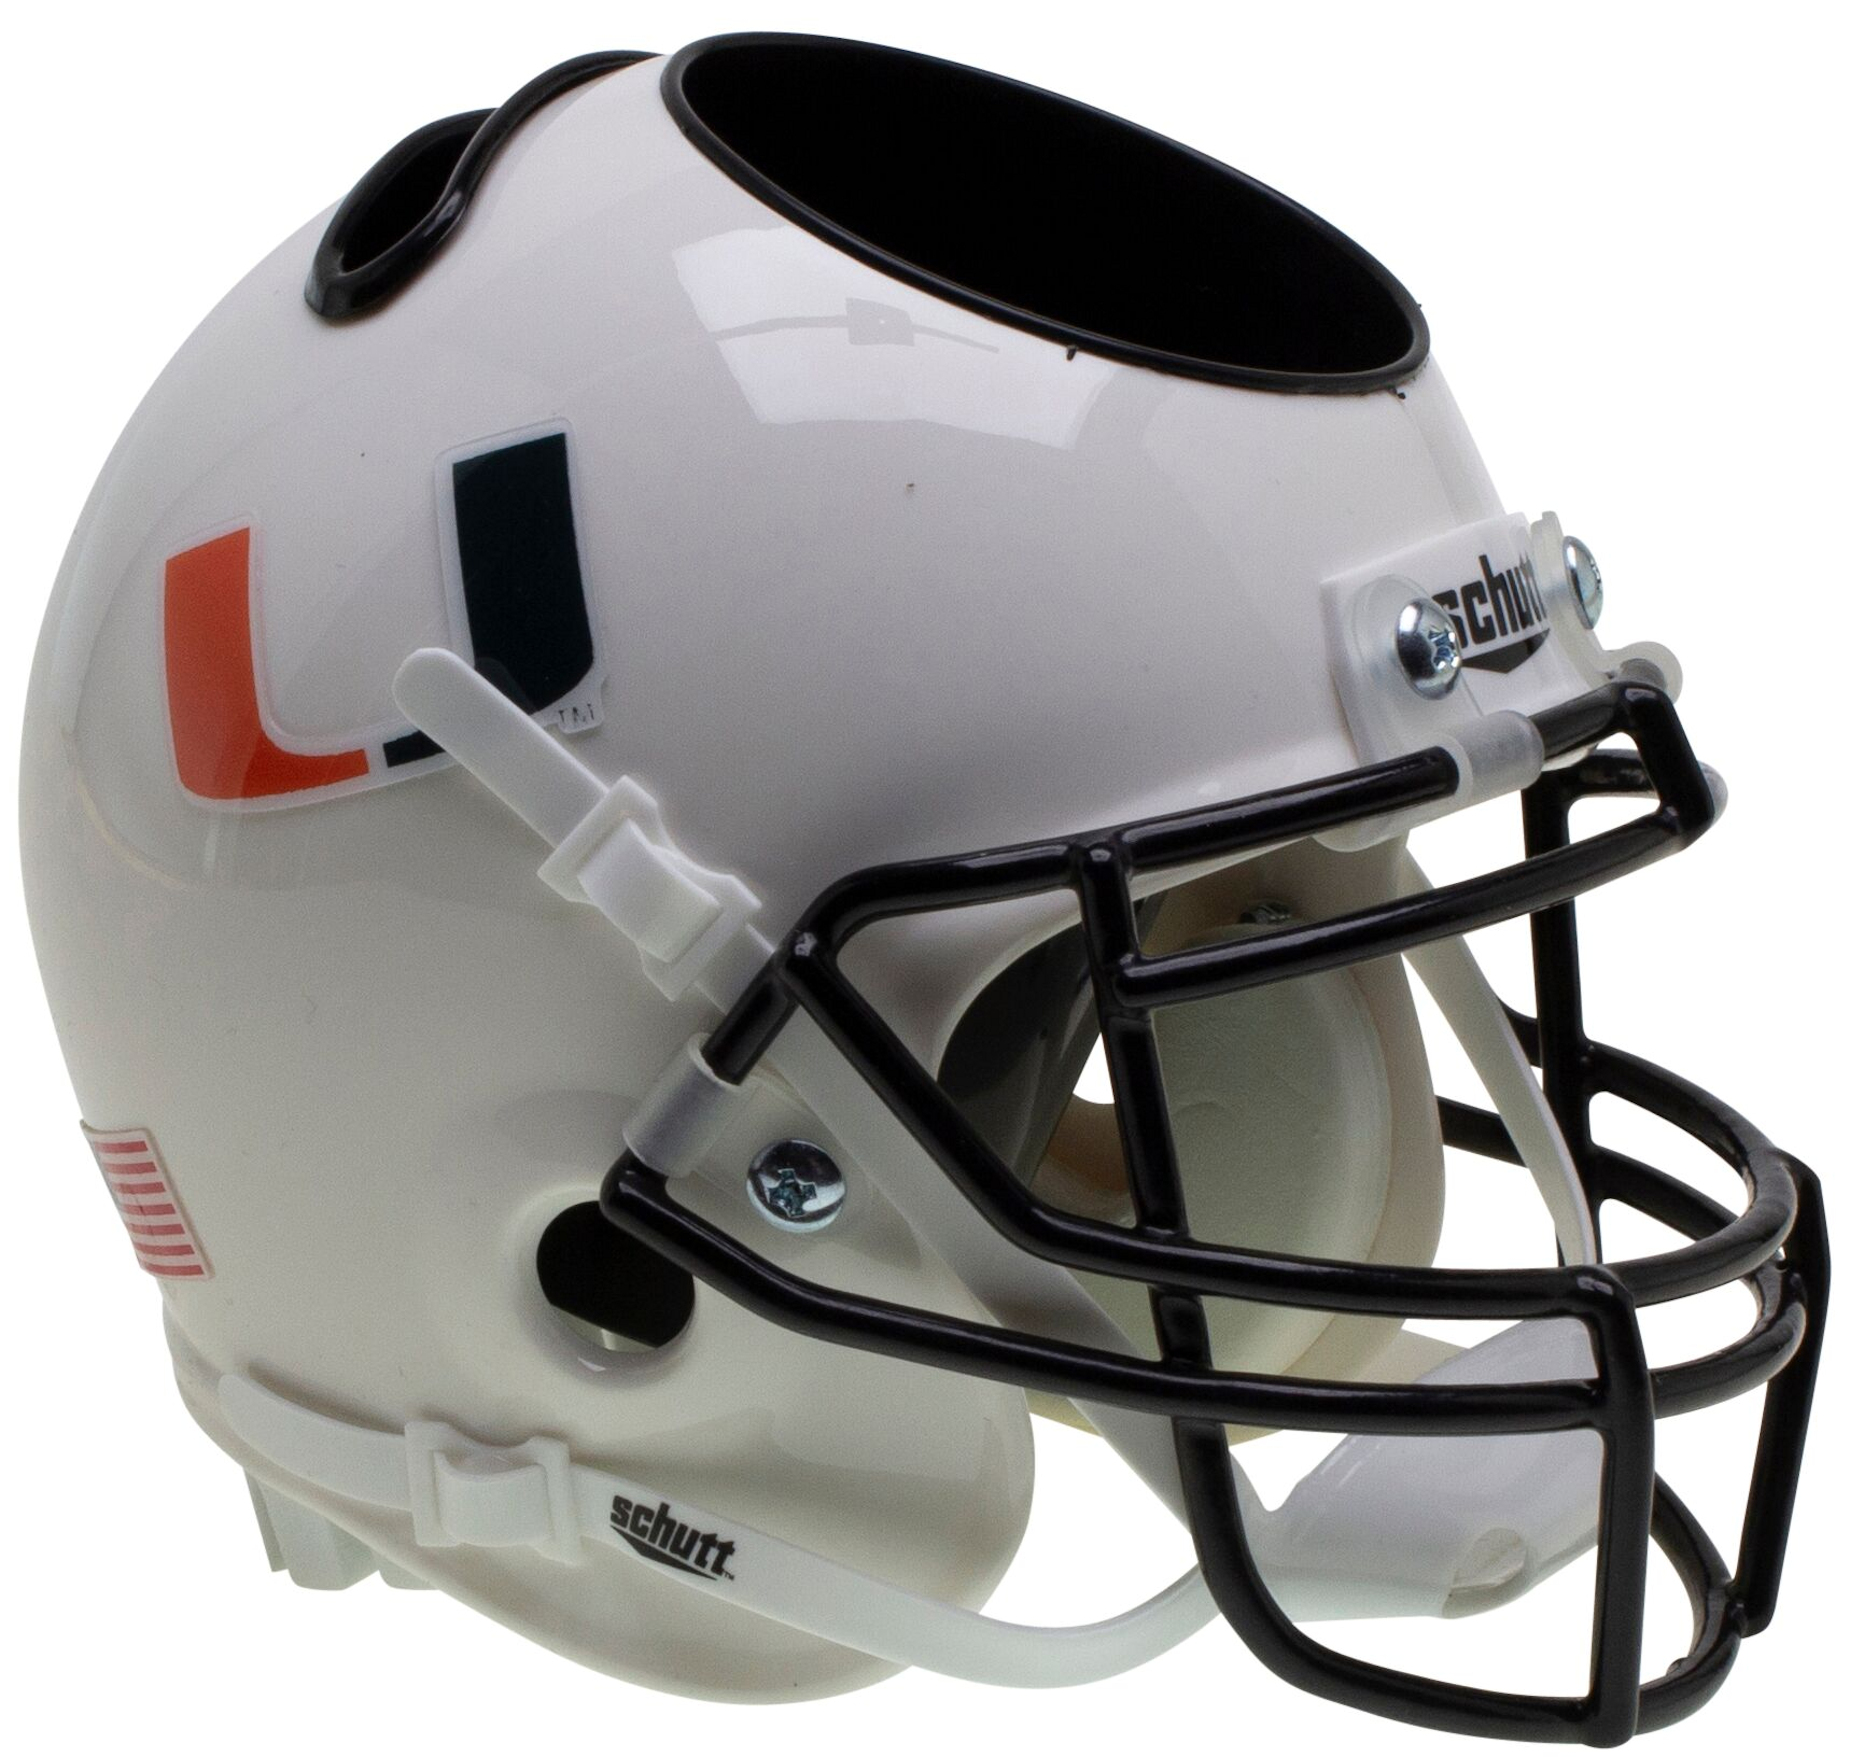 Miami Hurricanes Miniature Football Helmet Desk Caddy <B>White with Black Mask</B>